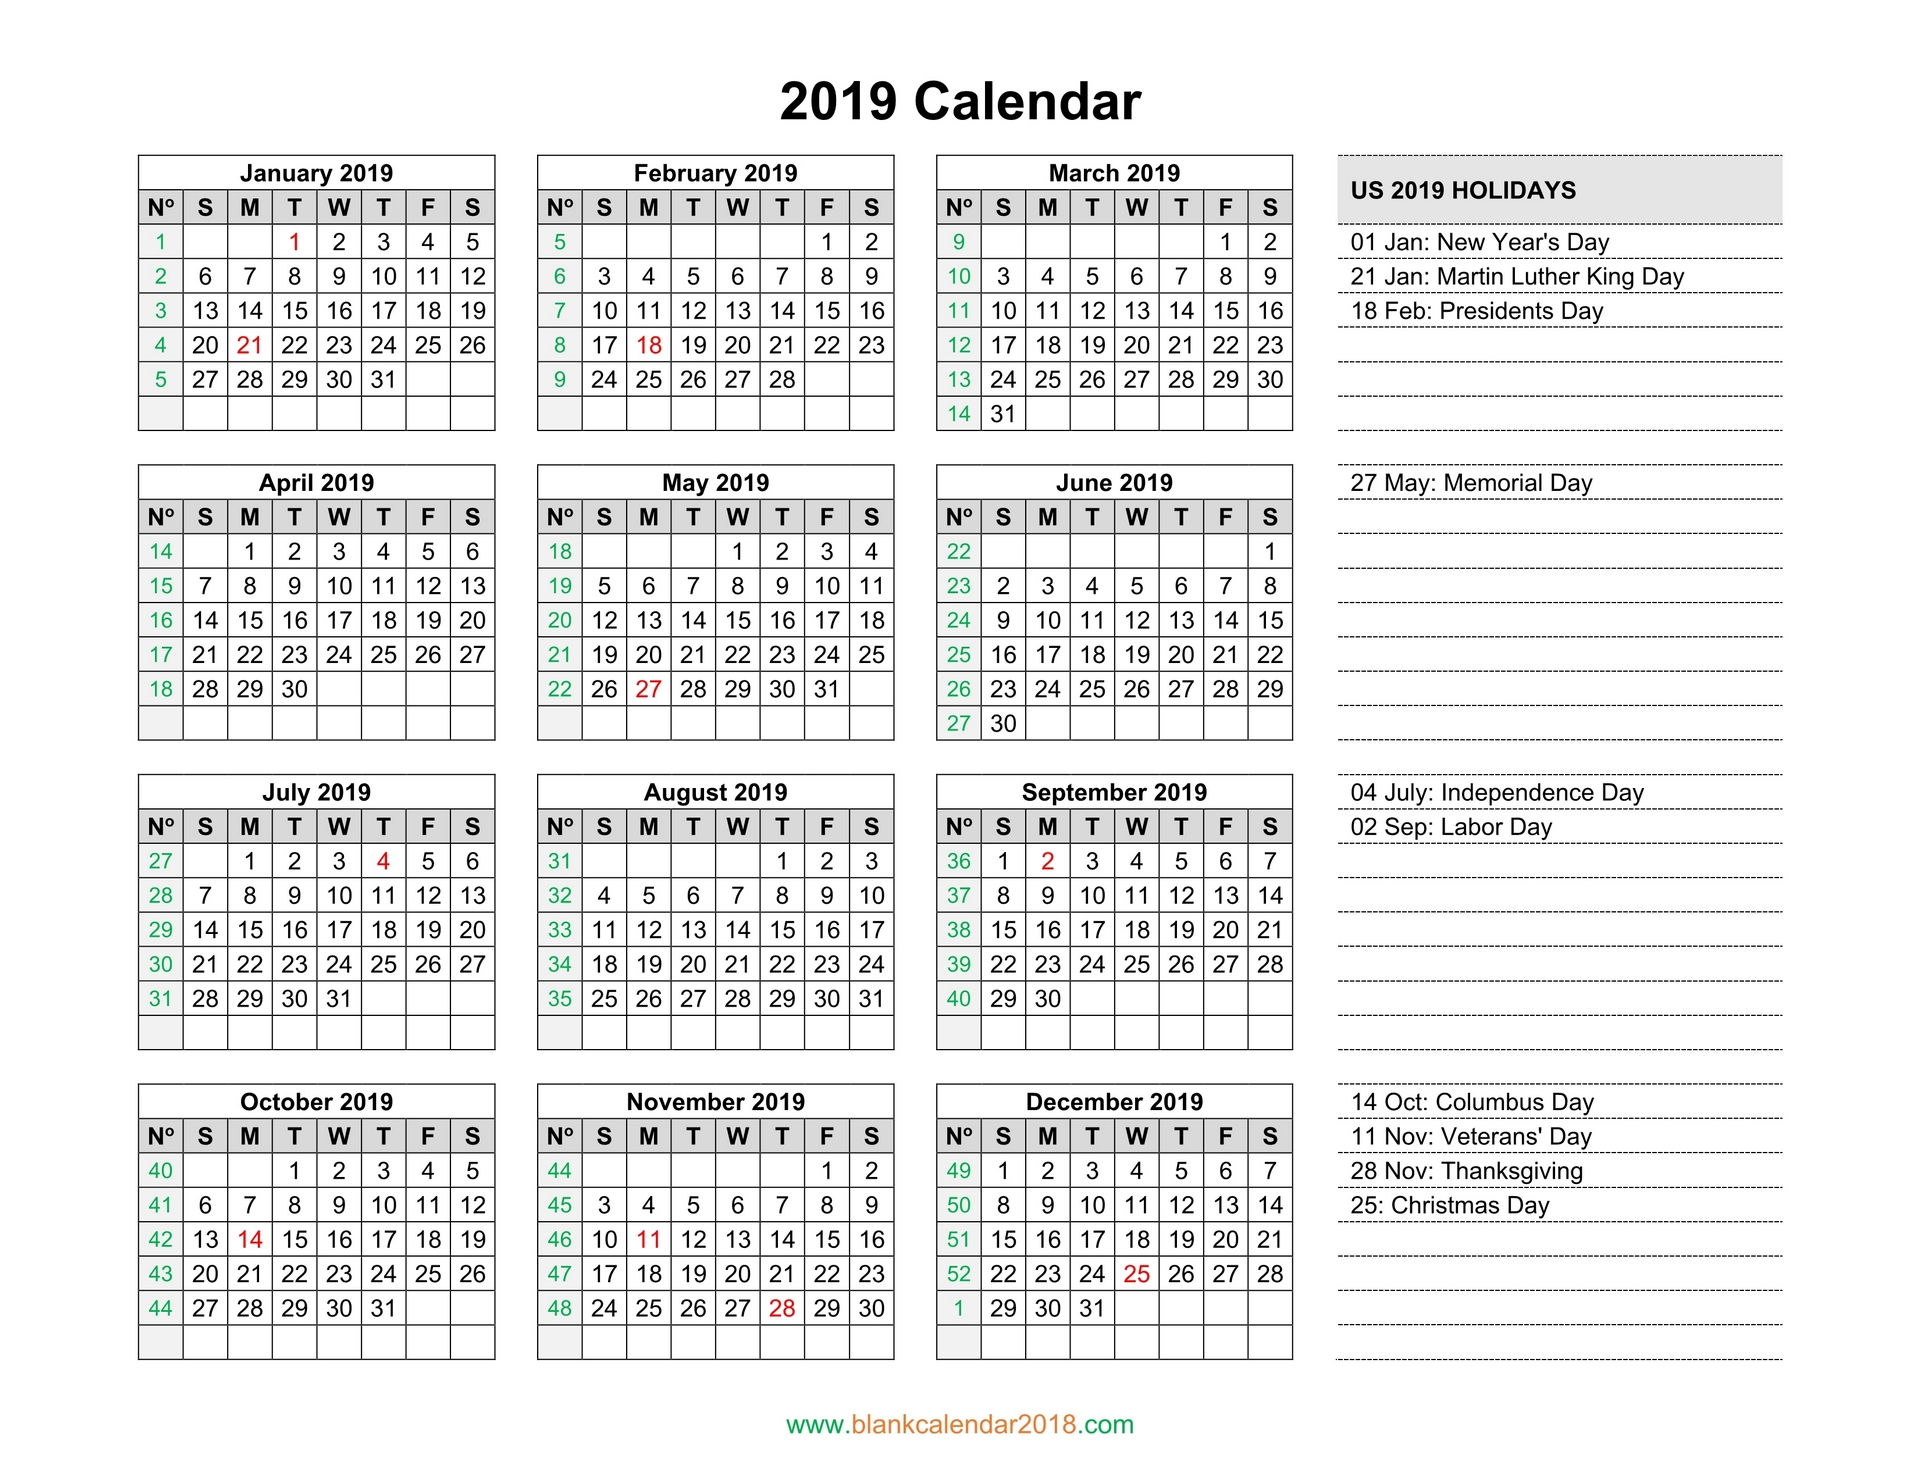 Year 2019 Holidays Calendar With Blank